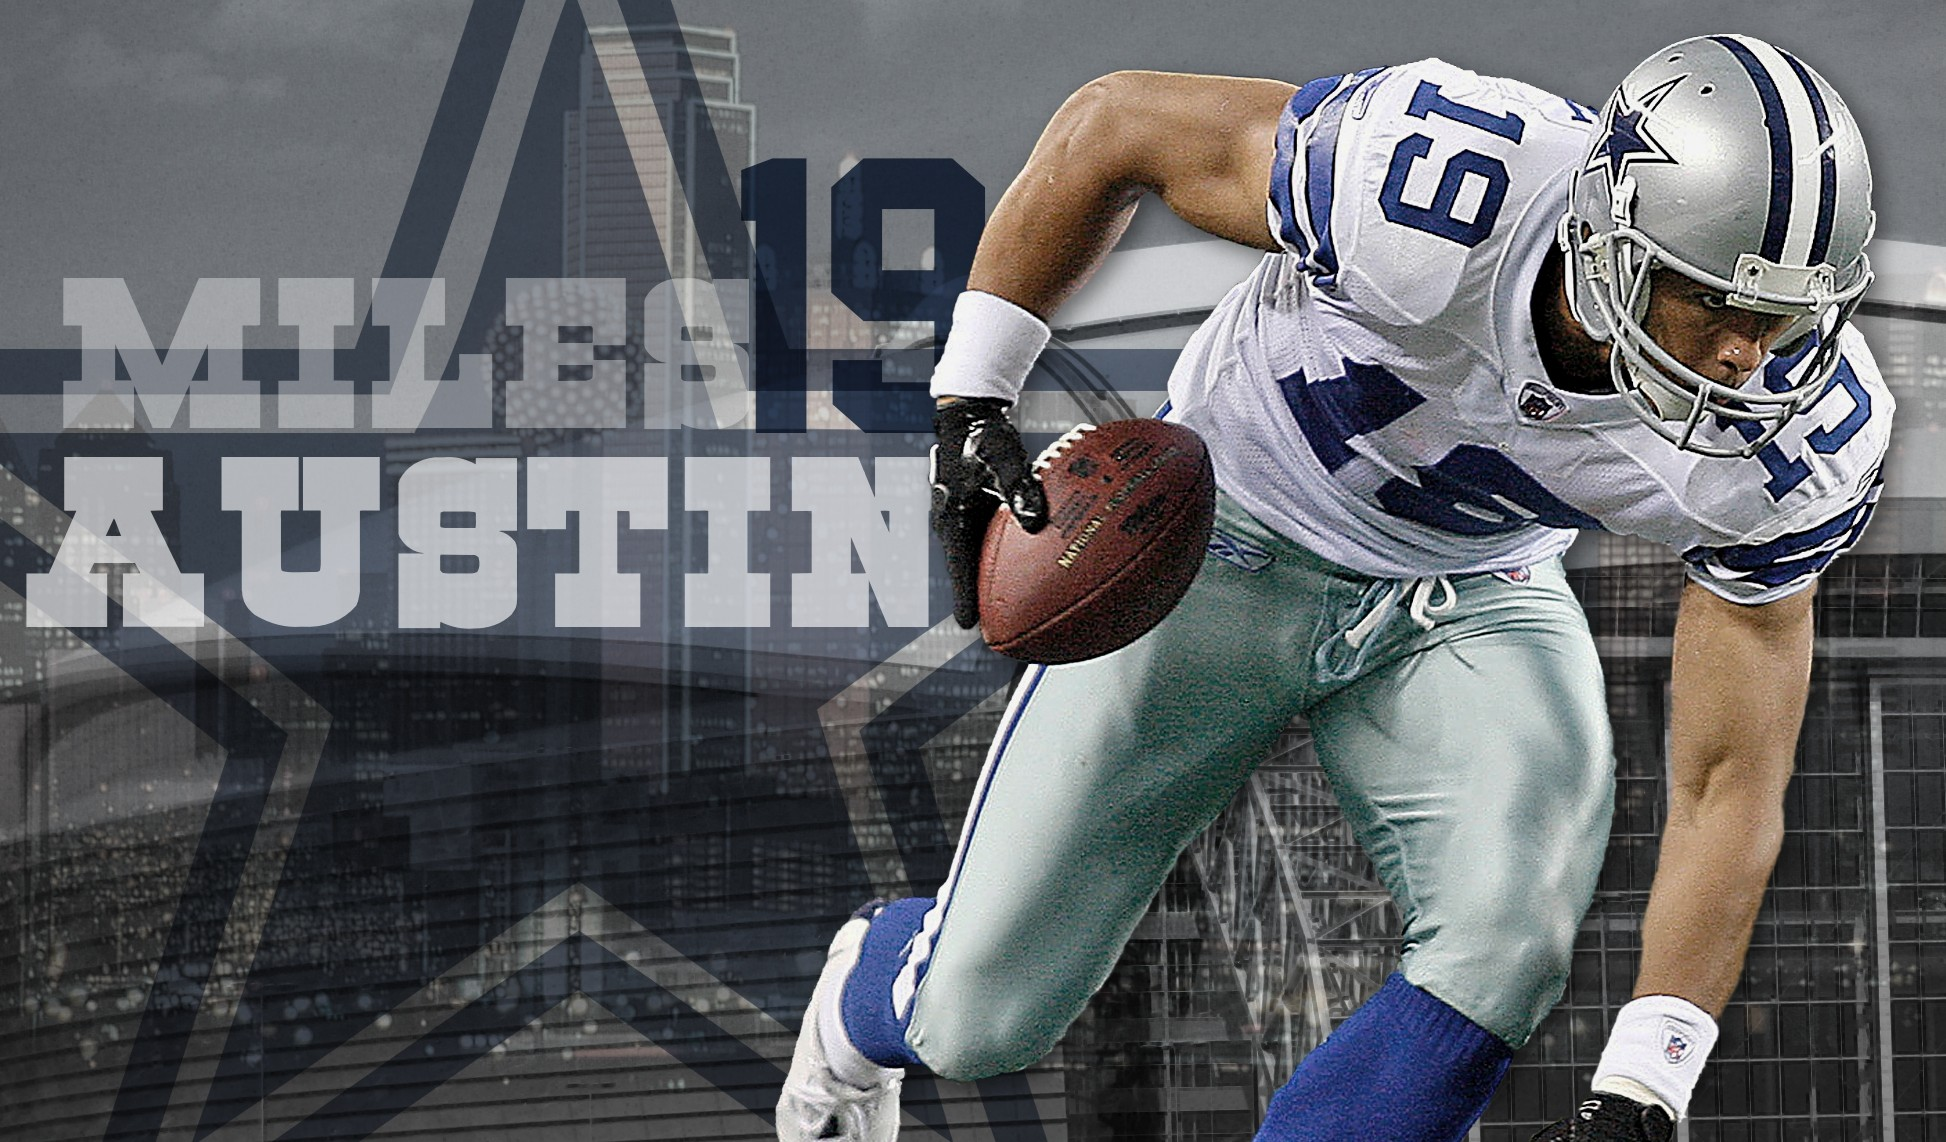 Nfl Dallas Cowboys Wallpaper Desktop Images Windows 10 1946x1142